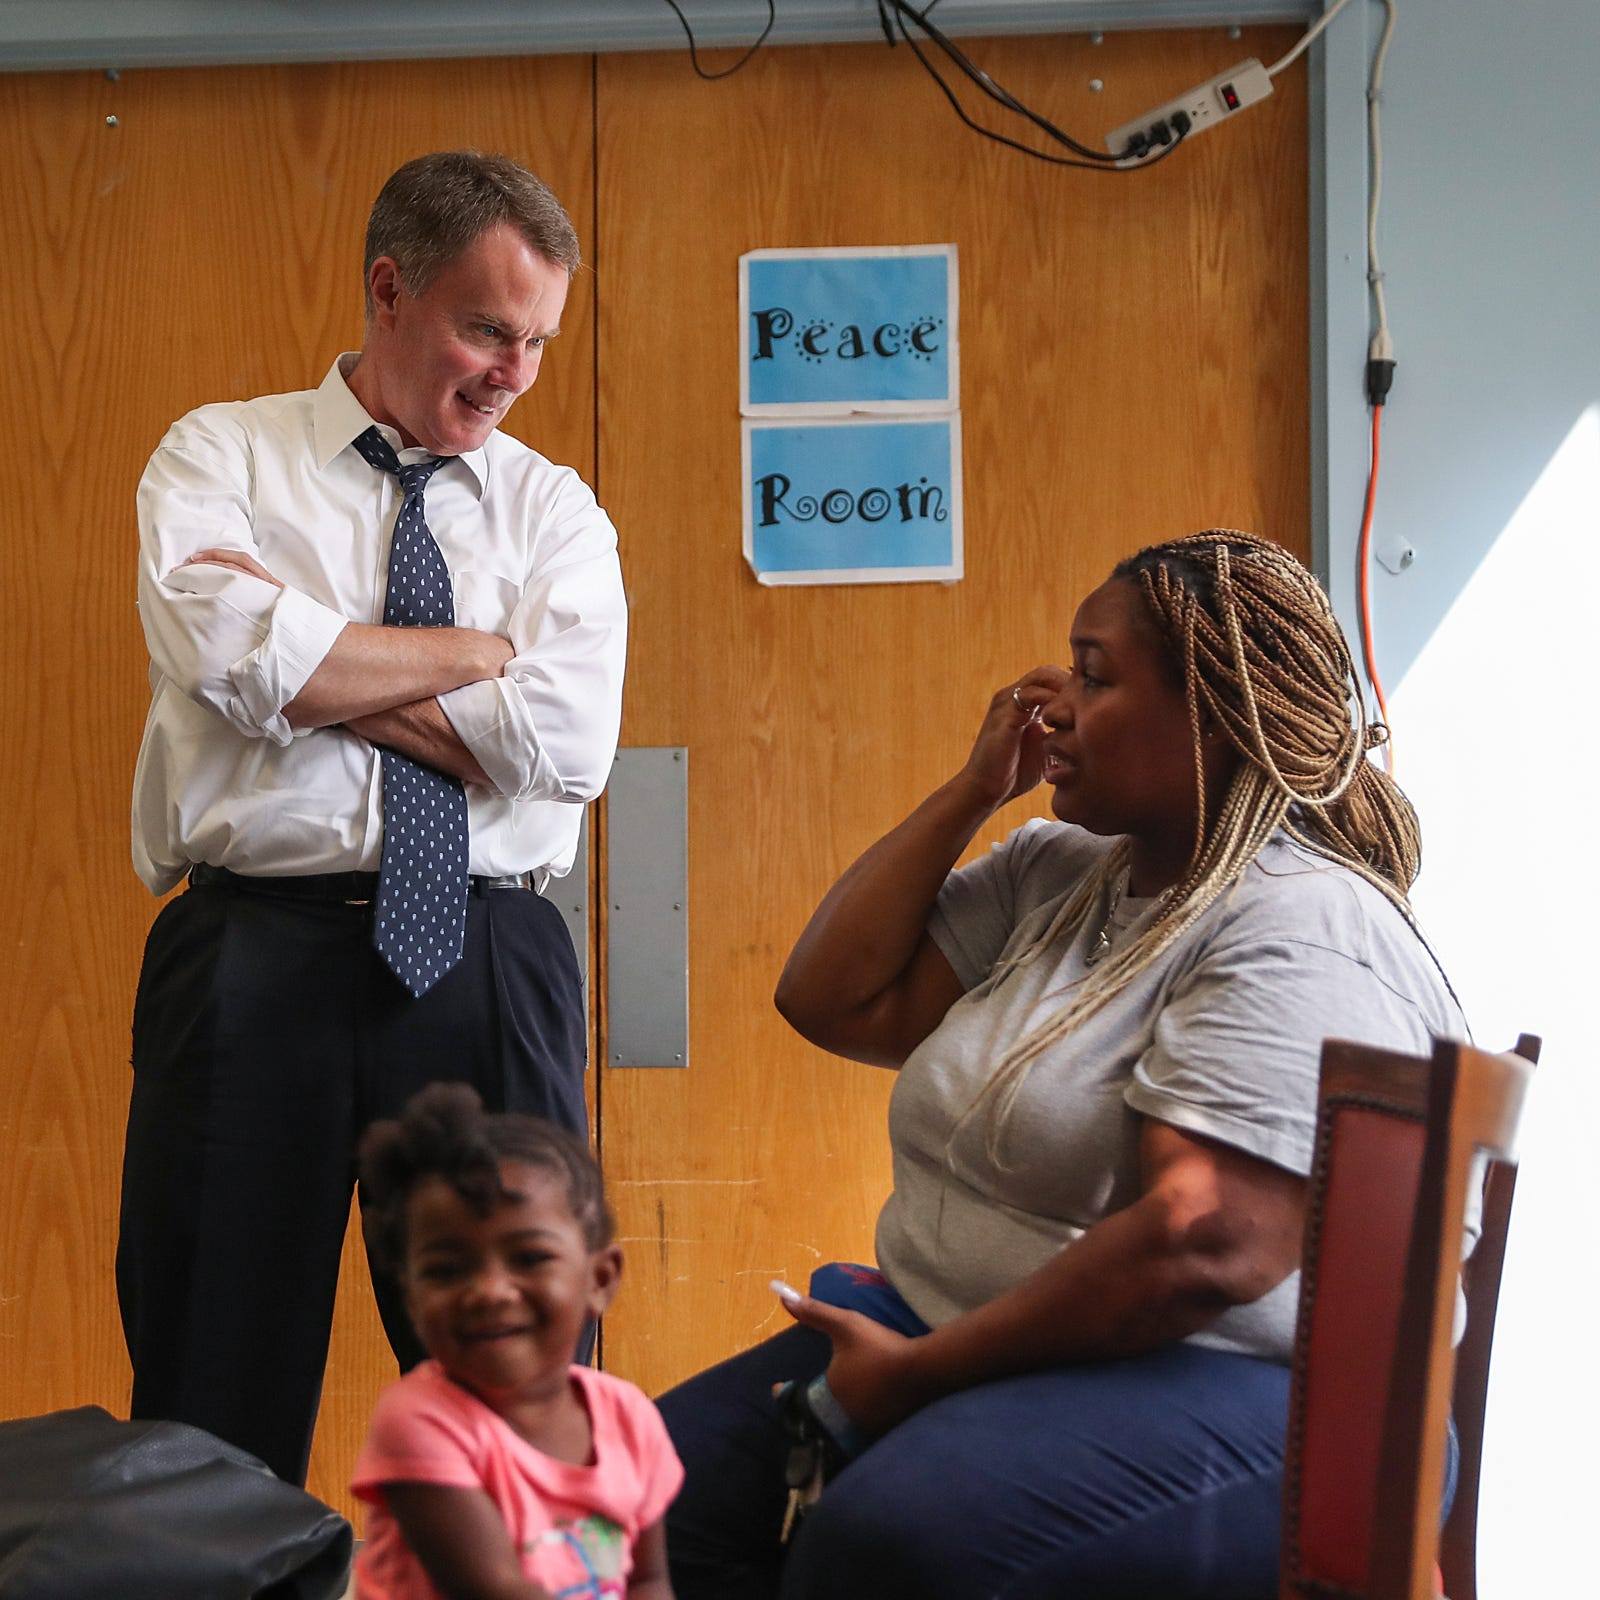 Indianapolis Mayor Joe Hogsett stops to chat with a familiar face, Monique Page, while touring the Martin Luther King Community Center in Indianapolis, Tuesday, Sept. 11, 2018.